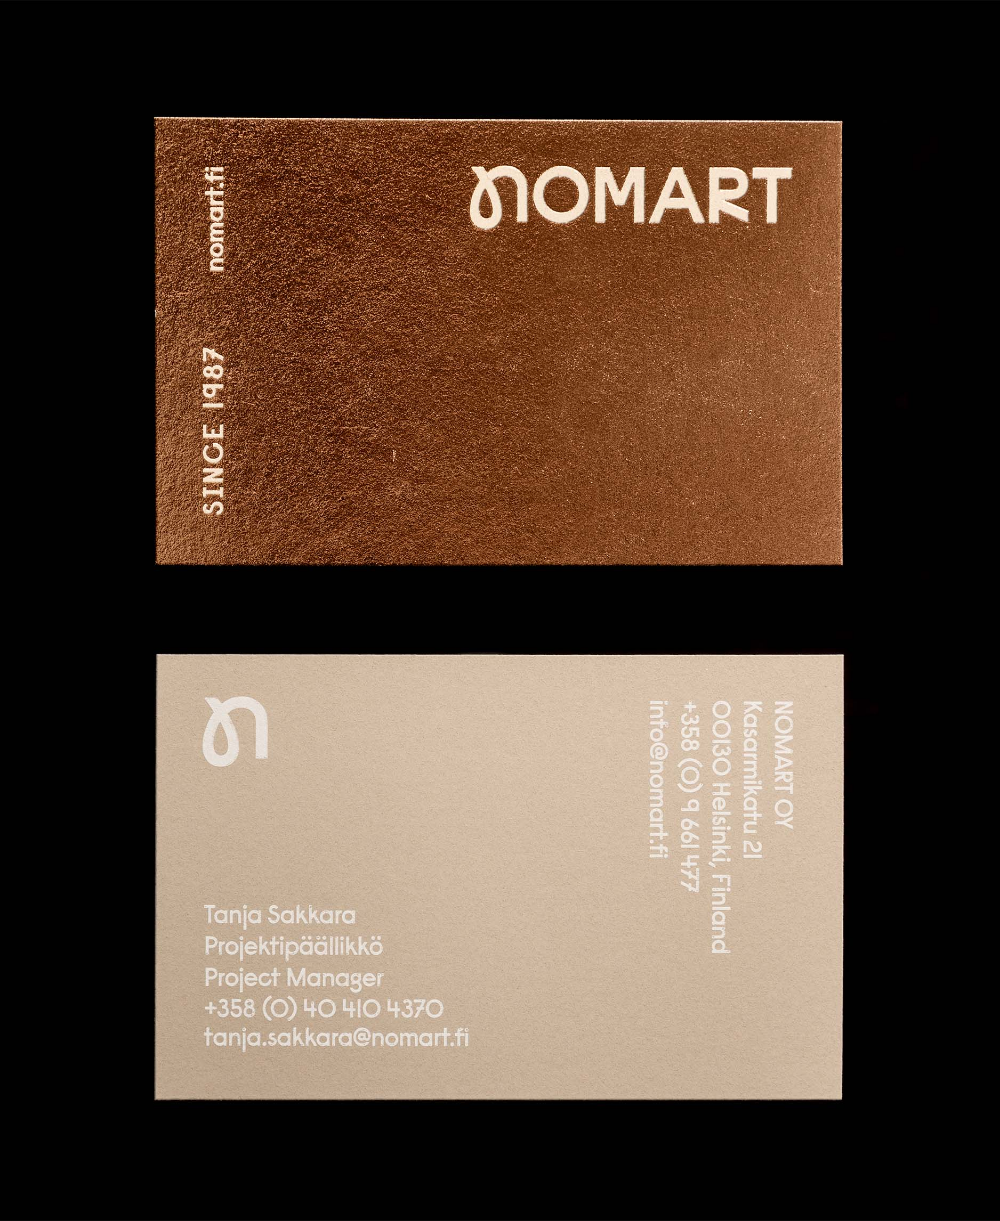 Work Nomart With Images Business Cards Layout Branding